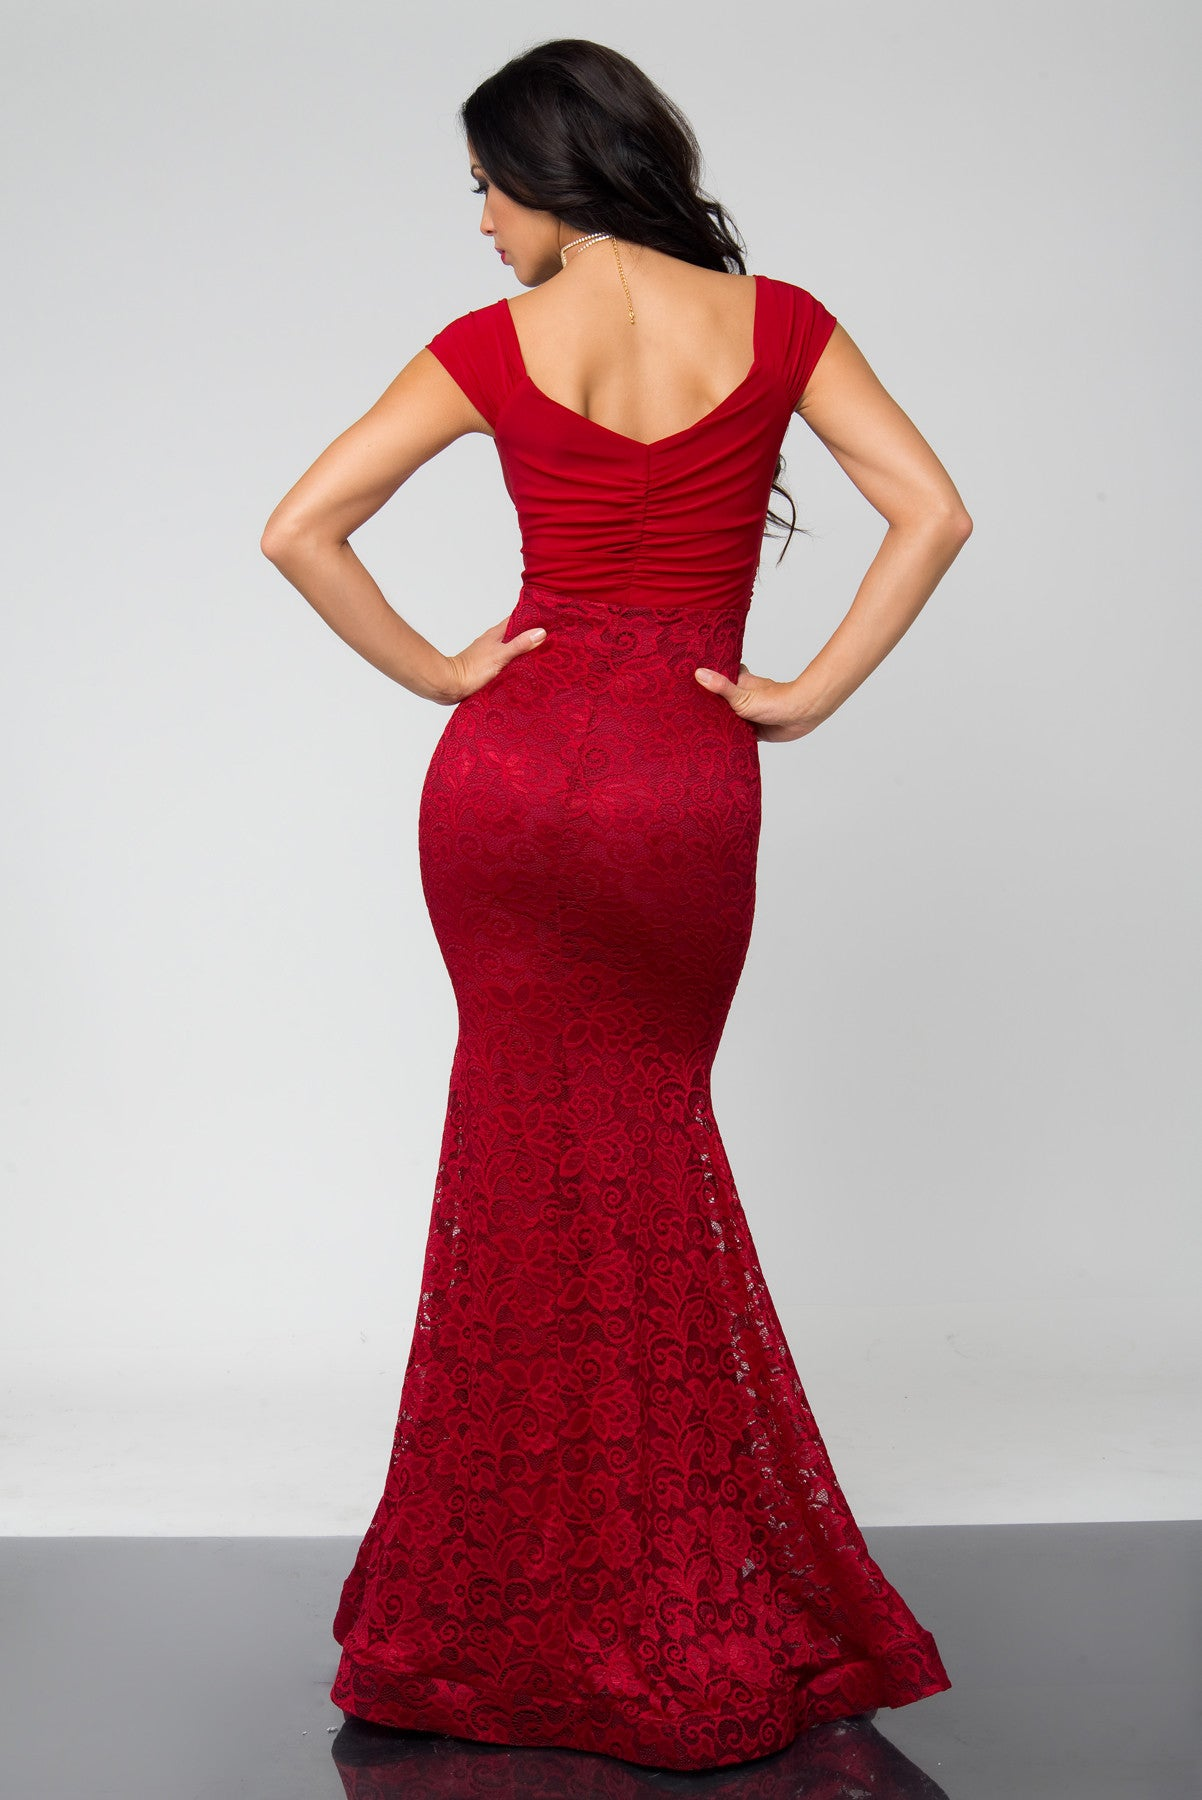 Rania Red Dress - Fashion Effect Store  - 3